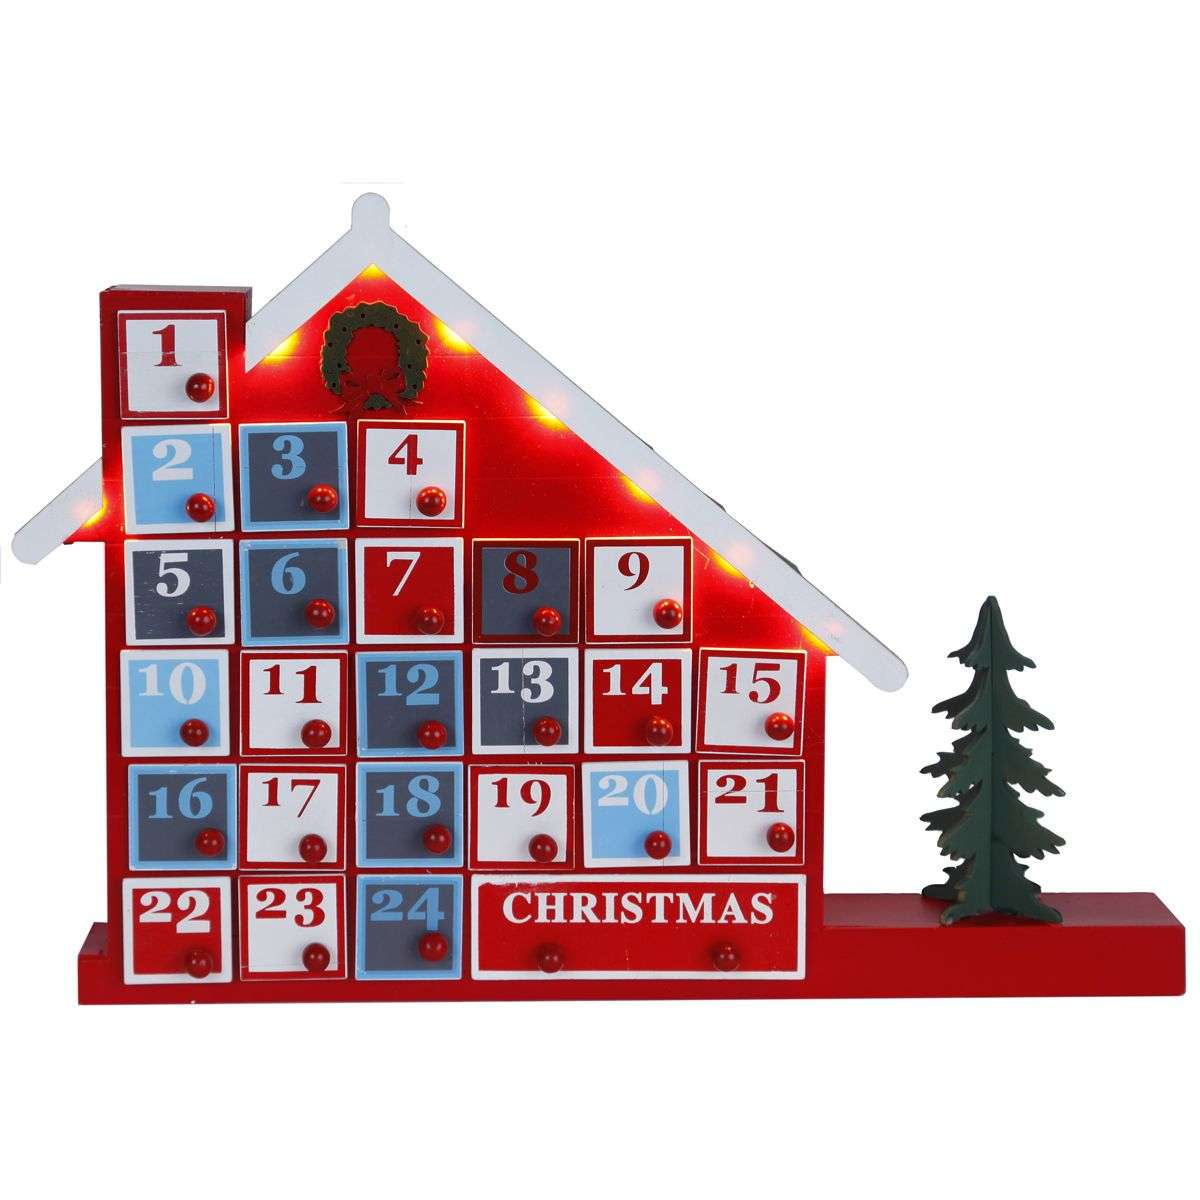 Lampe décorative Advent House-1522594-31